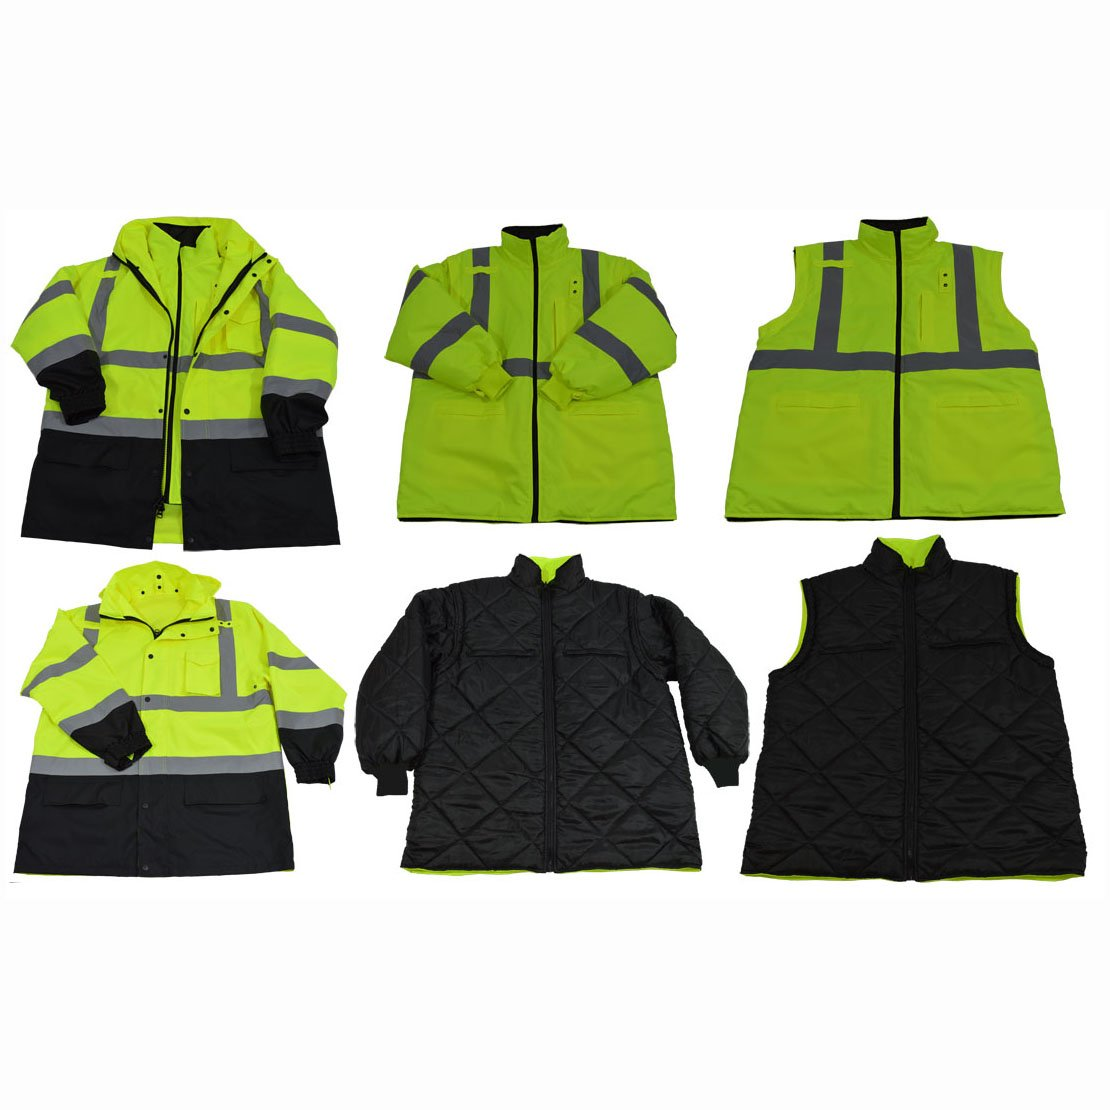 Petra Roc LBPJ6IN1-C3-L Two Tone Waterproof 6-In-1 Parka Jacket, Large, Lime/Black by Petra Roc (Image #1)